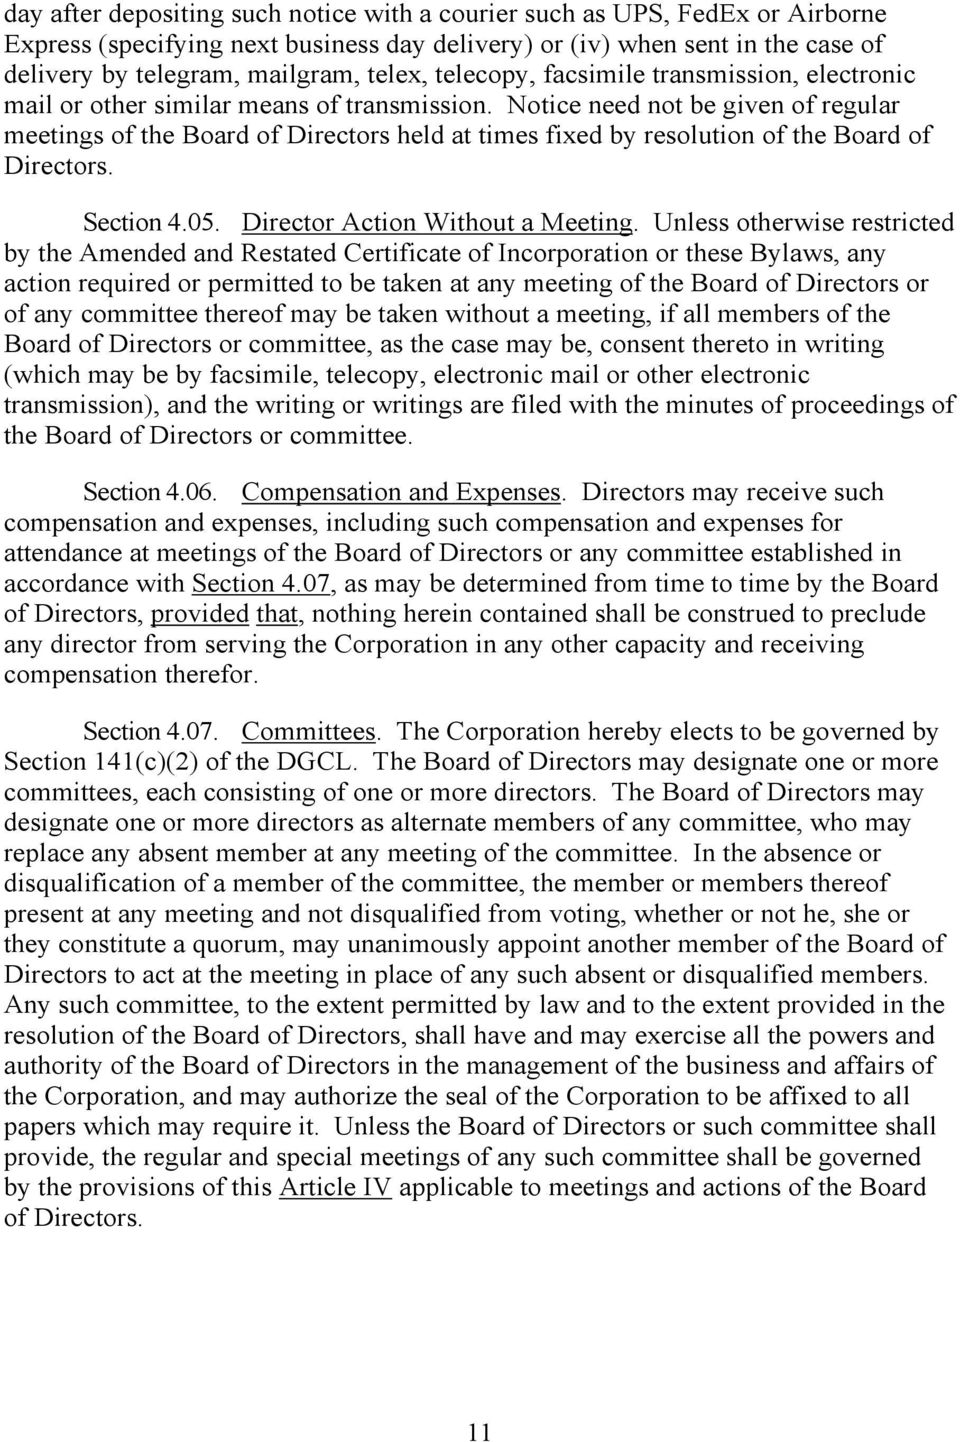 Notice need not be given of regular meetings of the Board of Directors held at times fixed by resolution of the Board of Directors. Section 4.05. Director Action Without a Meeting.